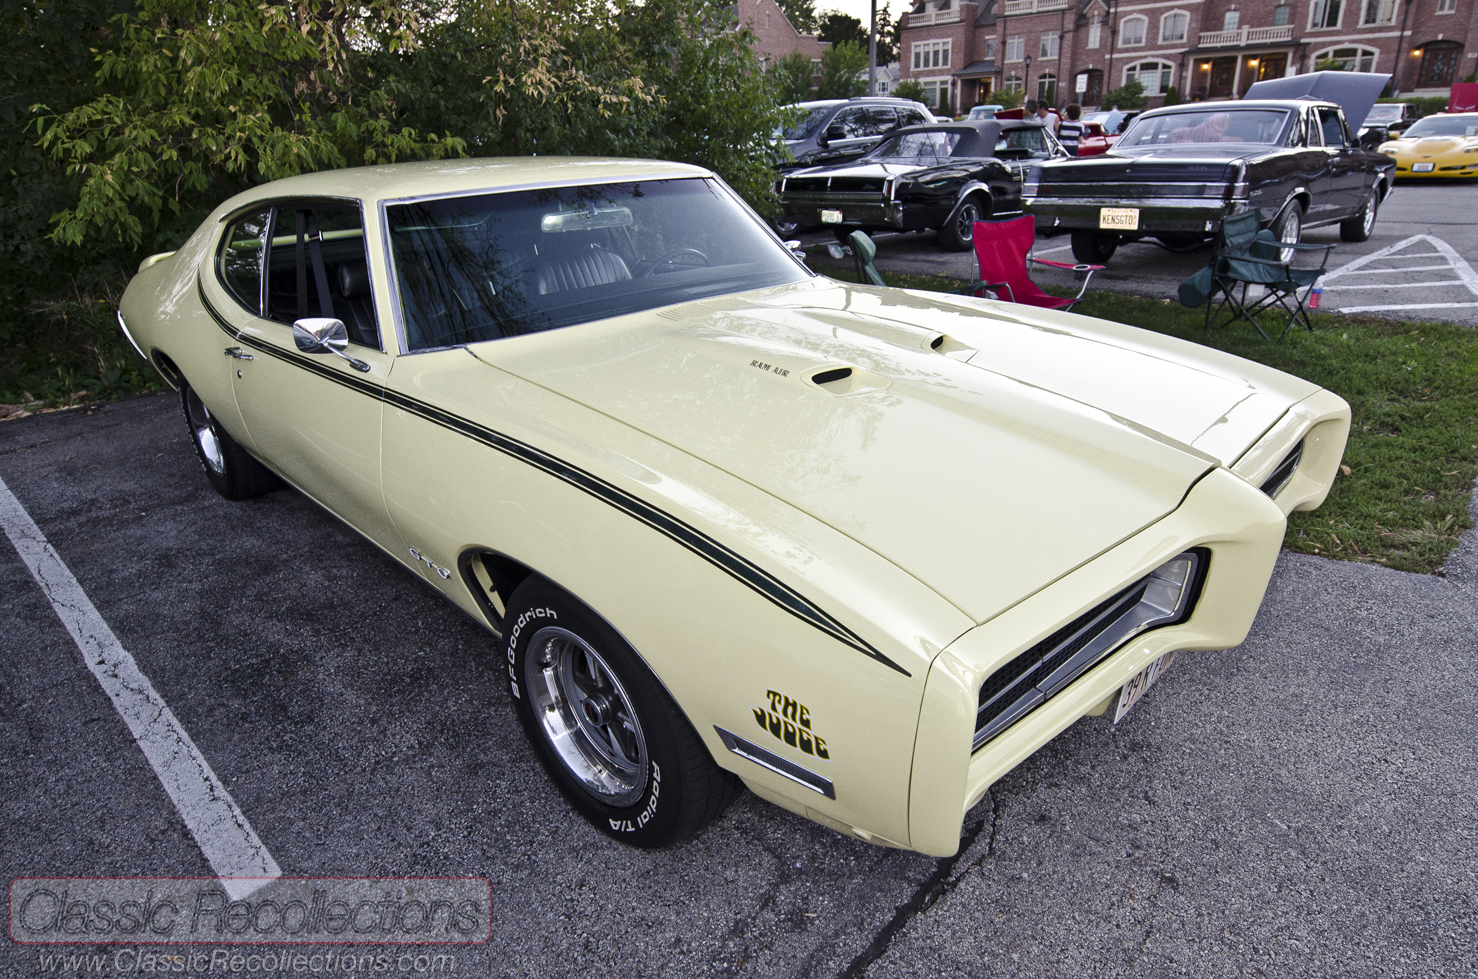 On The Road 1969 Pontiac Gto Judge Classic Recollections